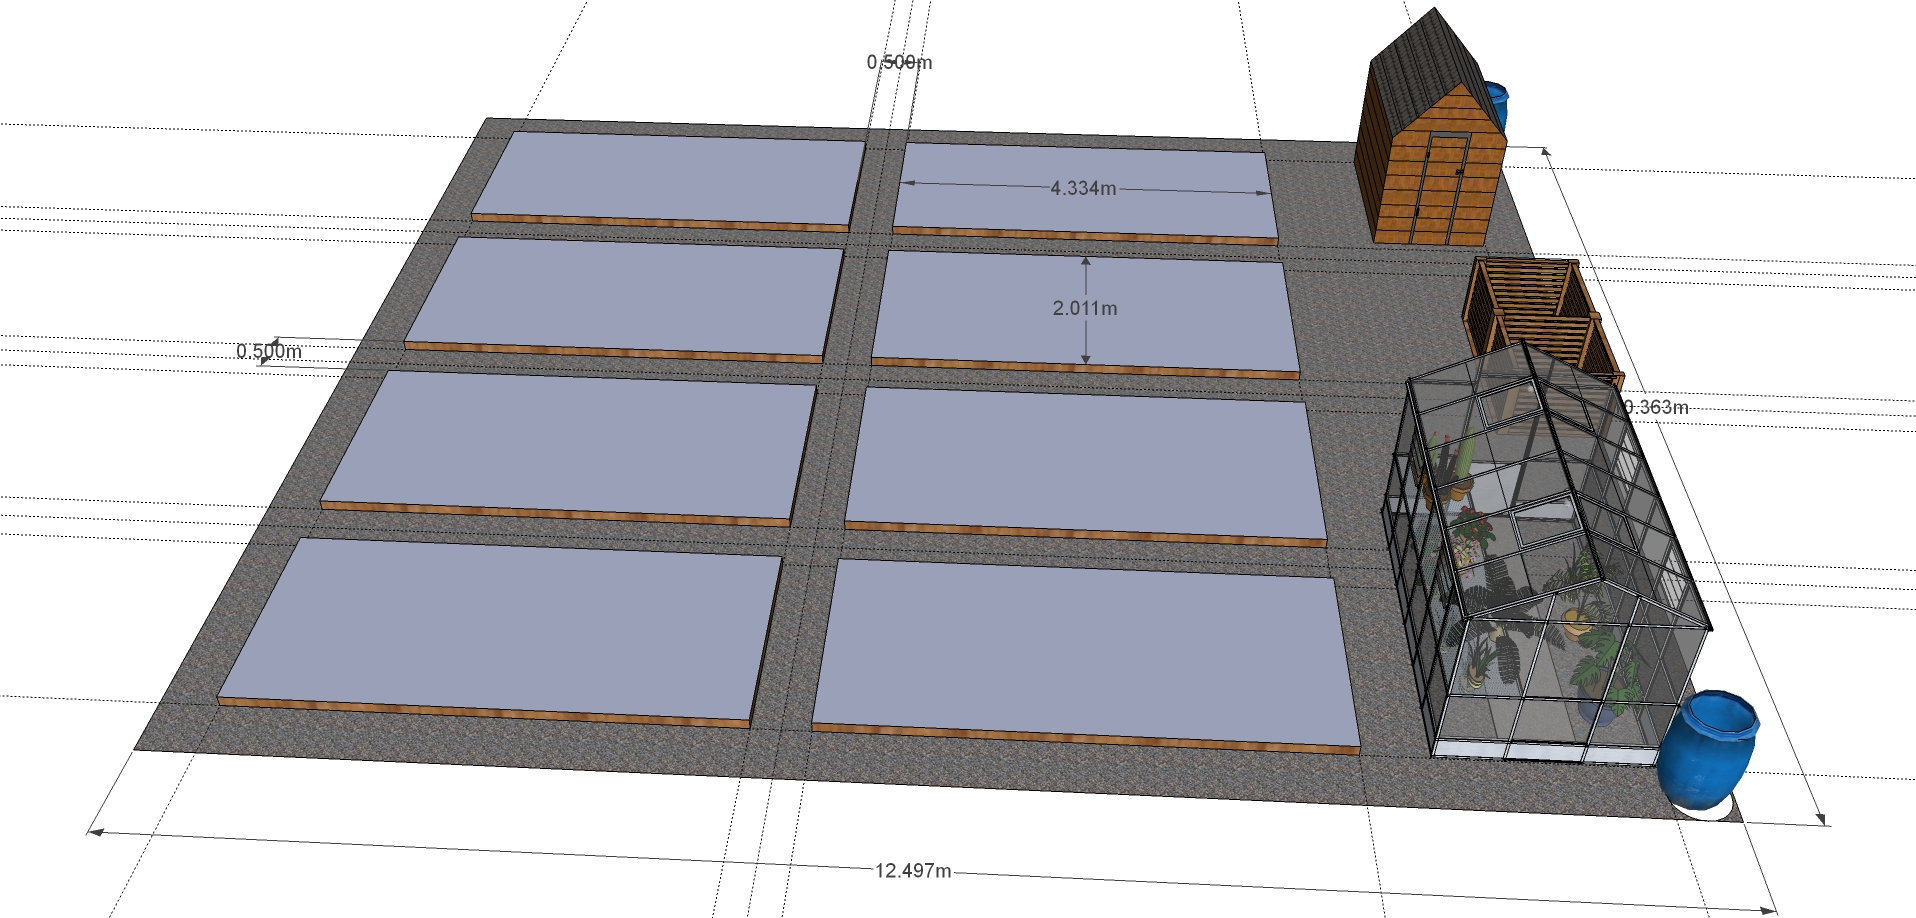 Layout for the new plot - designed in Google Sketchup